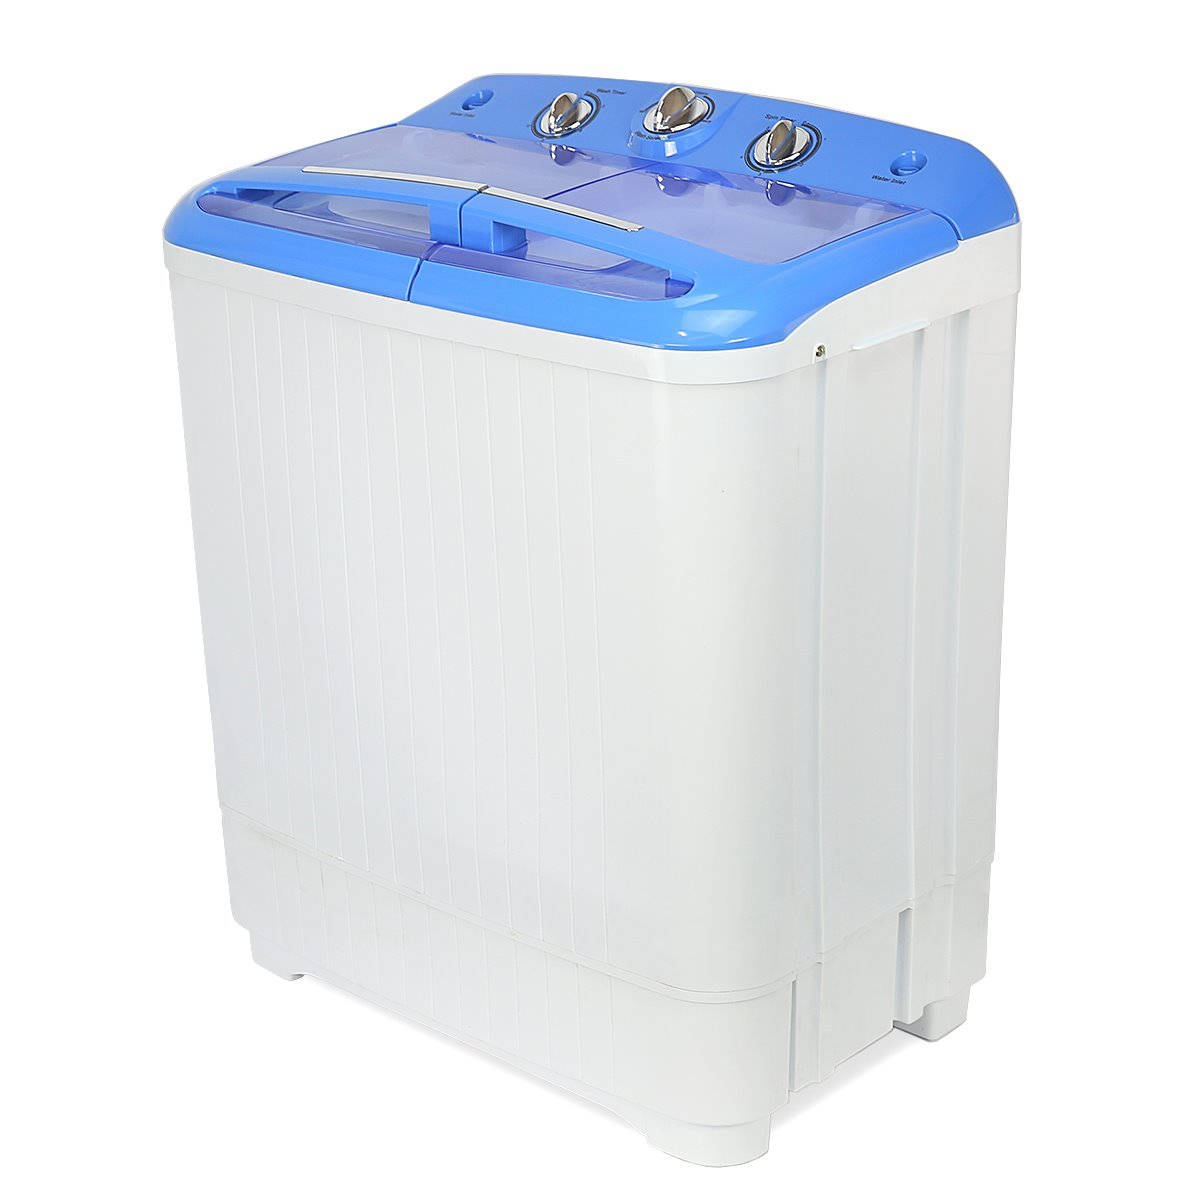 8LB Electric MINI Washer U0026 Spin Dryer Portable Compact Laundry Combo